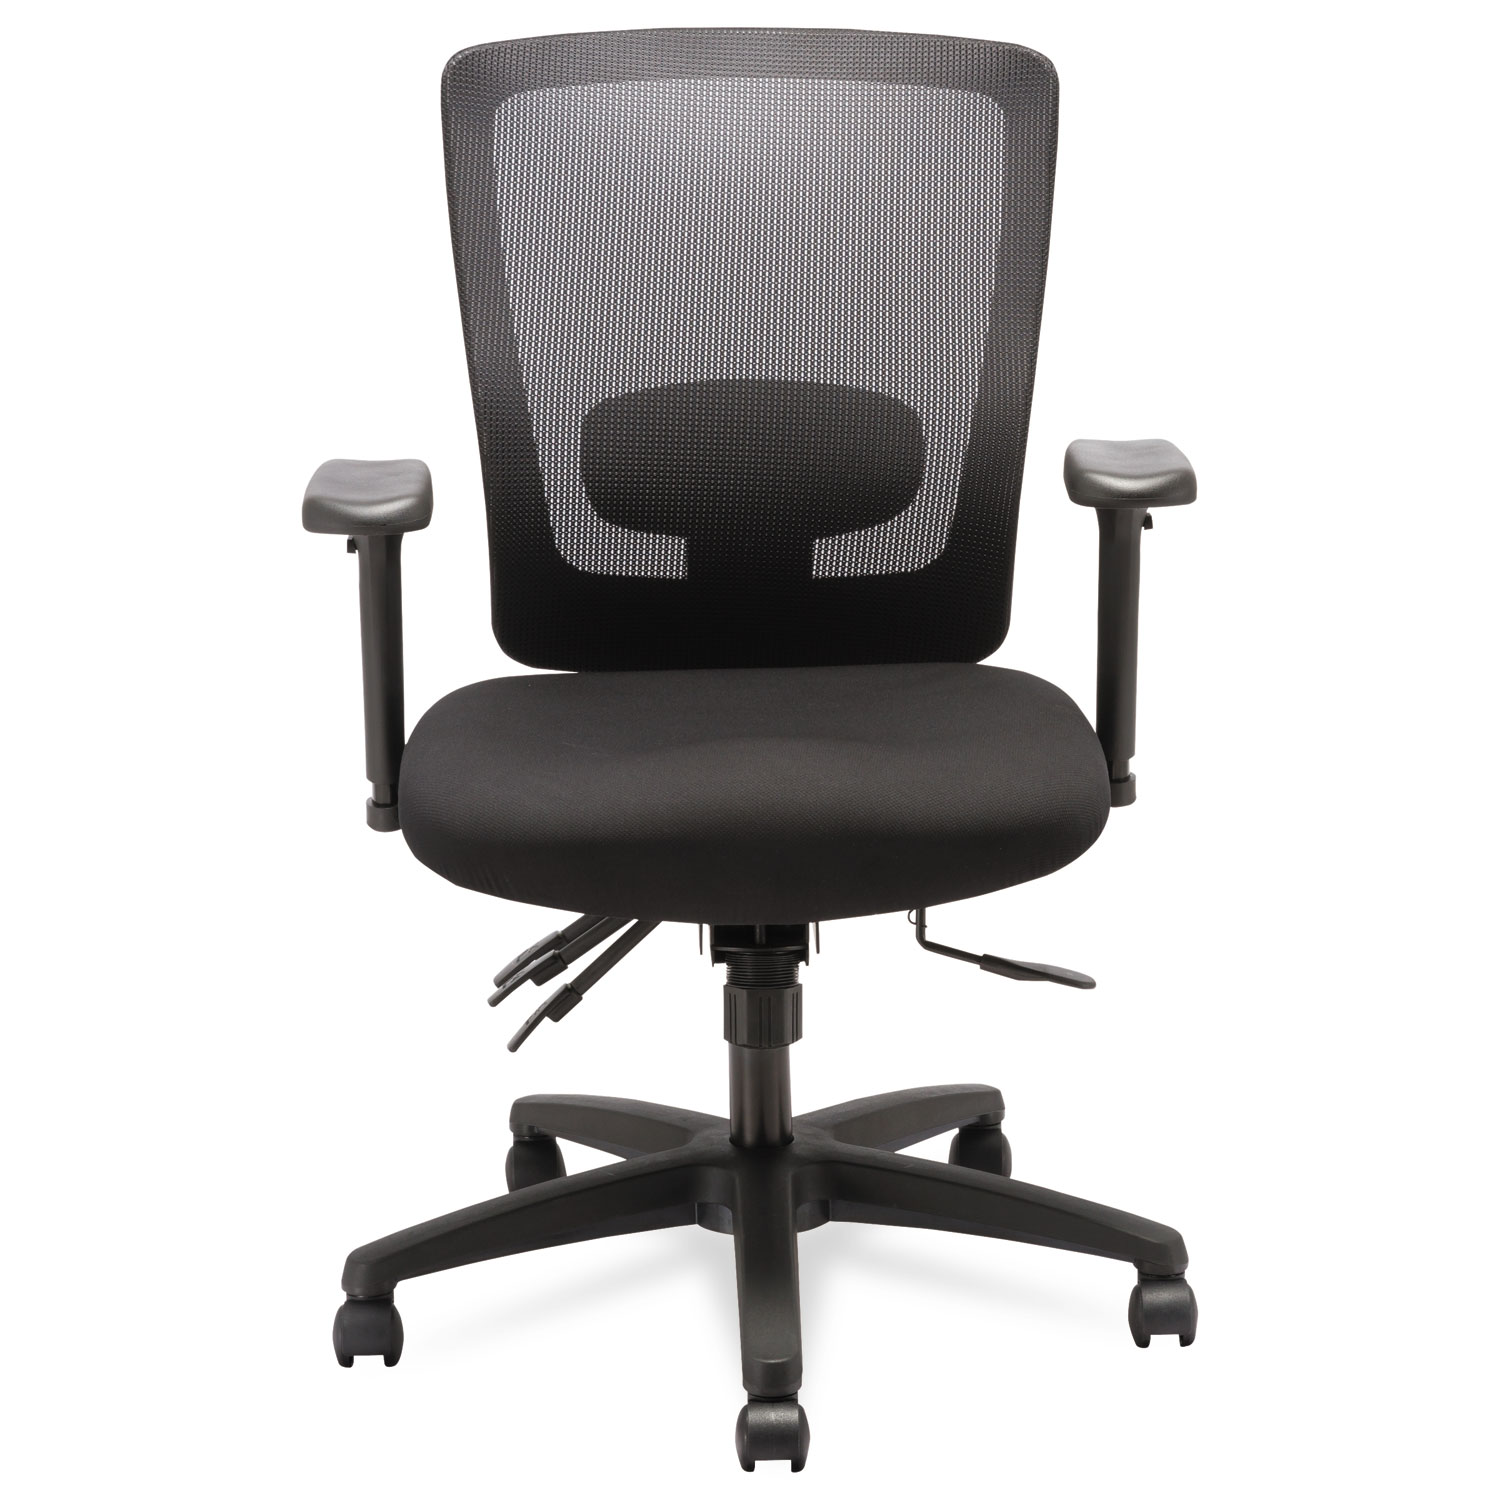 alera office chairs review teal lounge chair envy series mesh mid back multifunction by